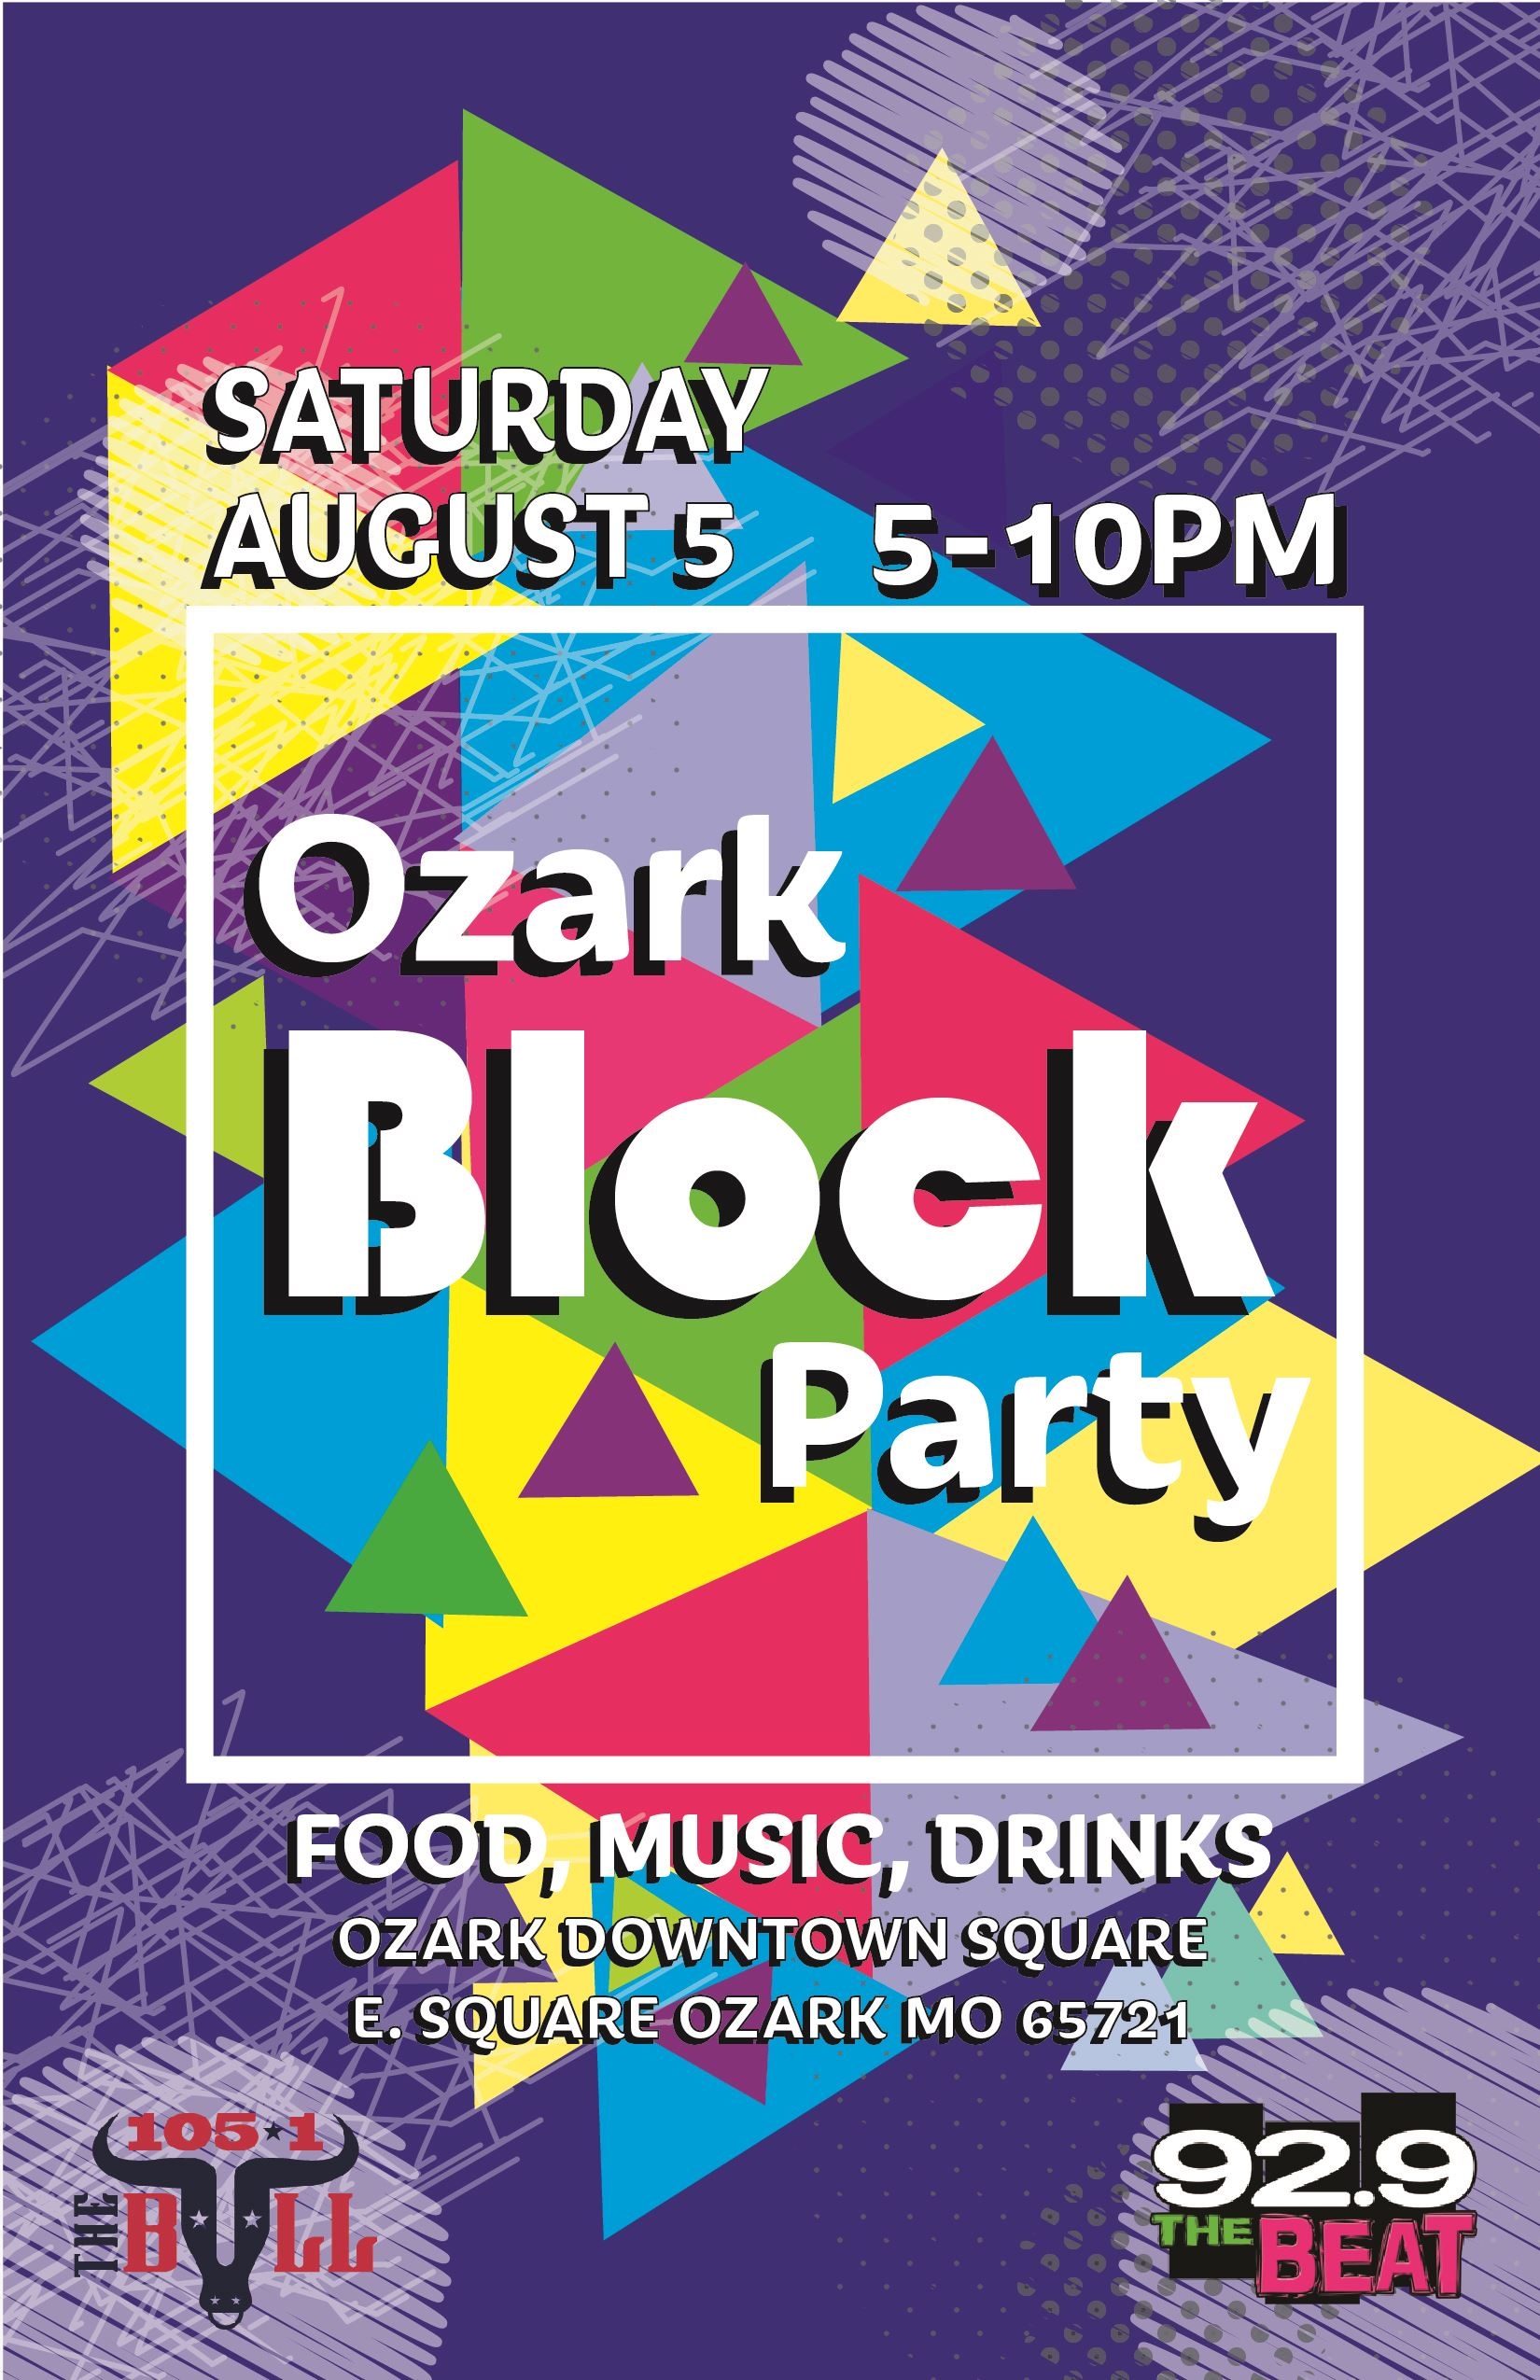 ozark block party poster .04-01